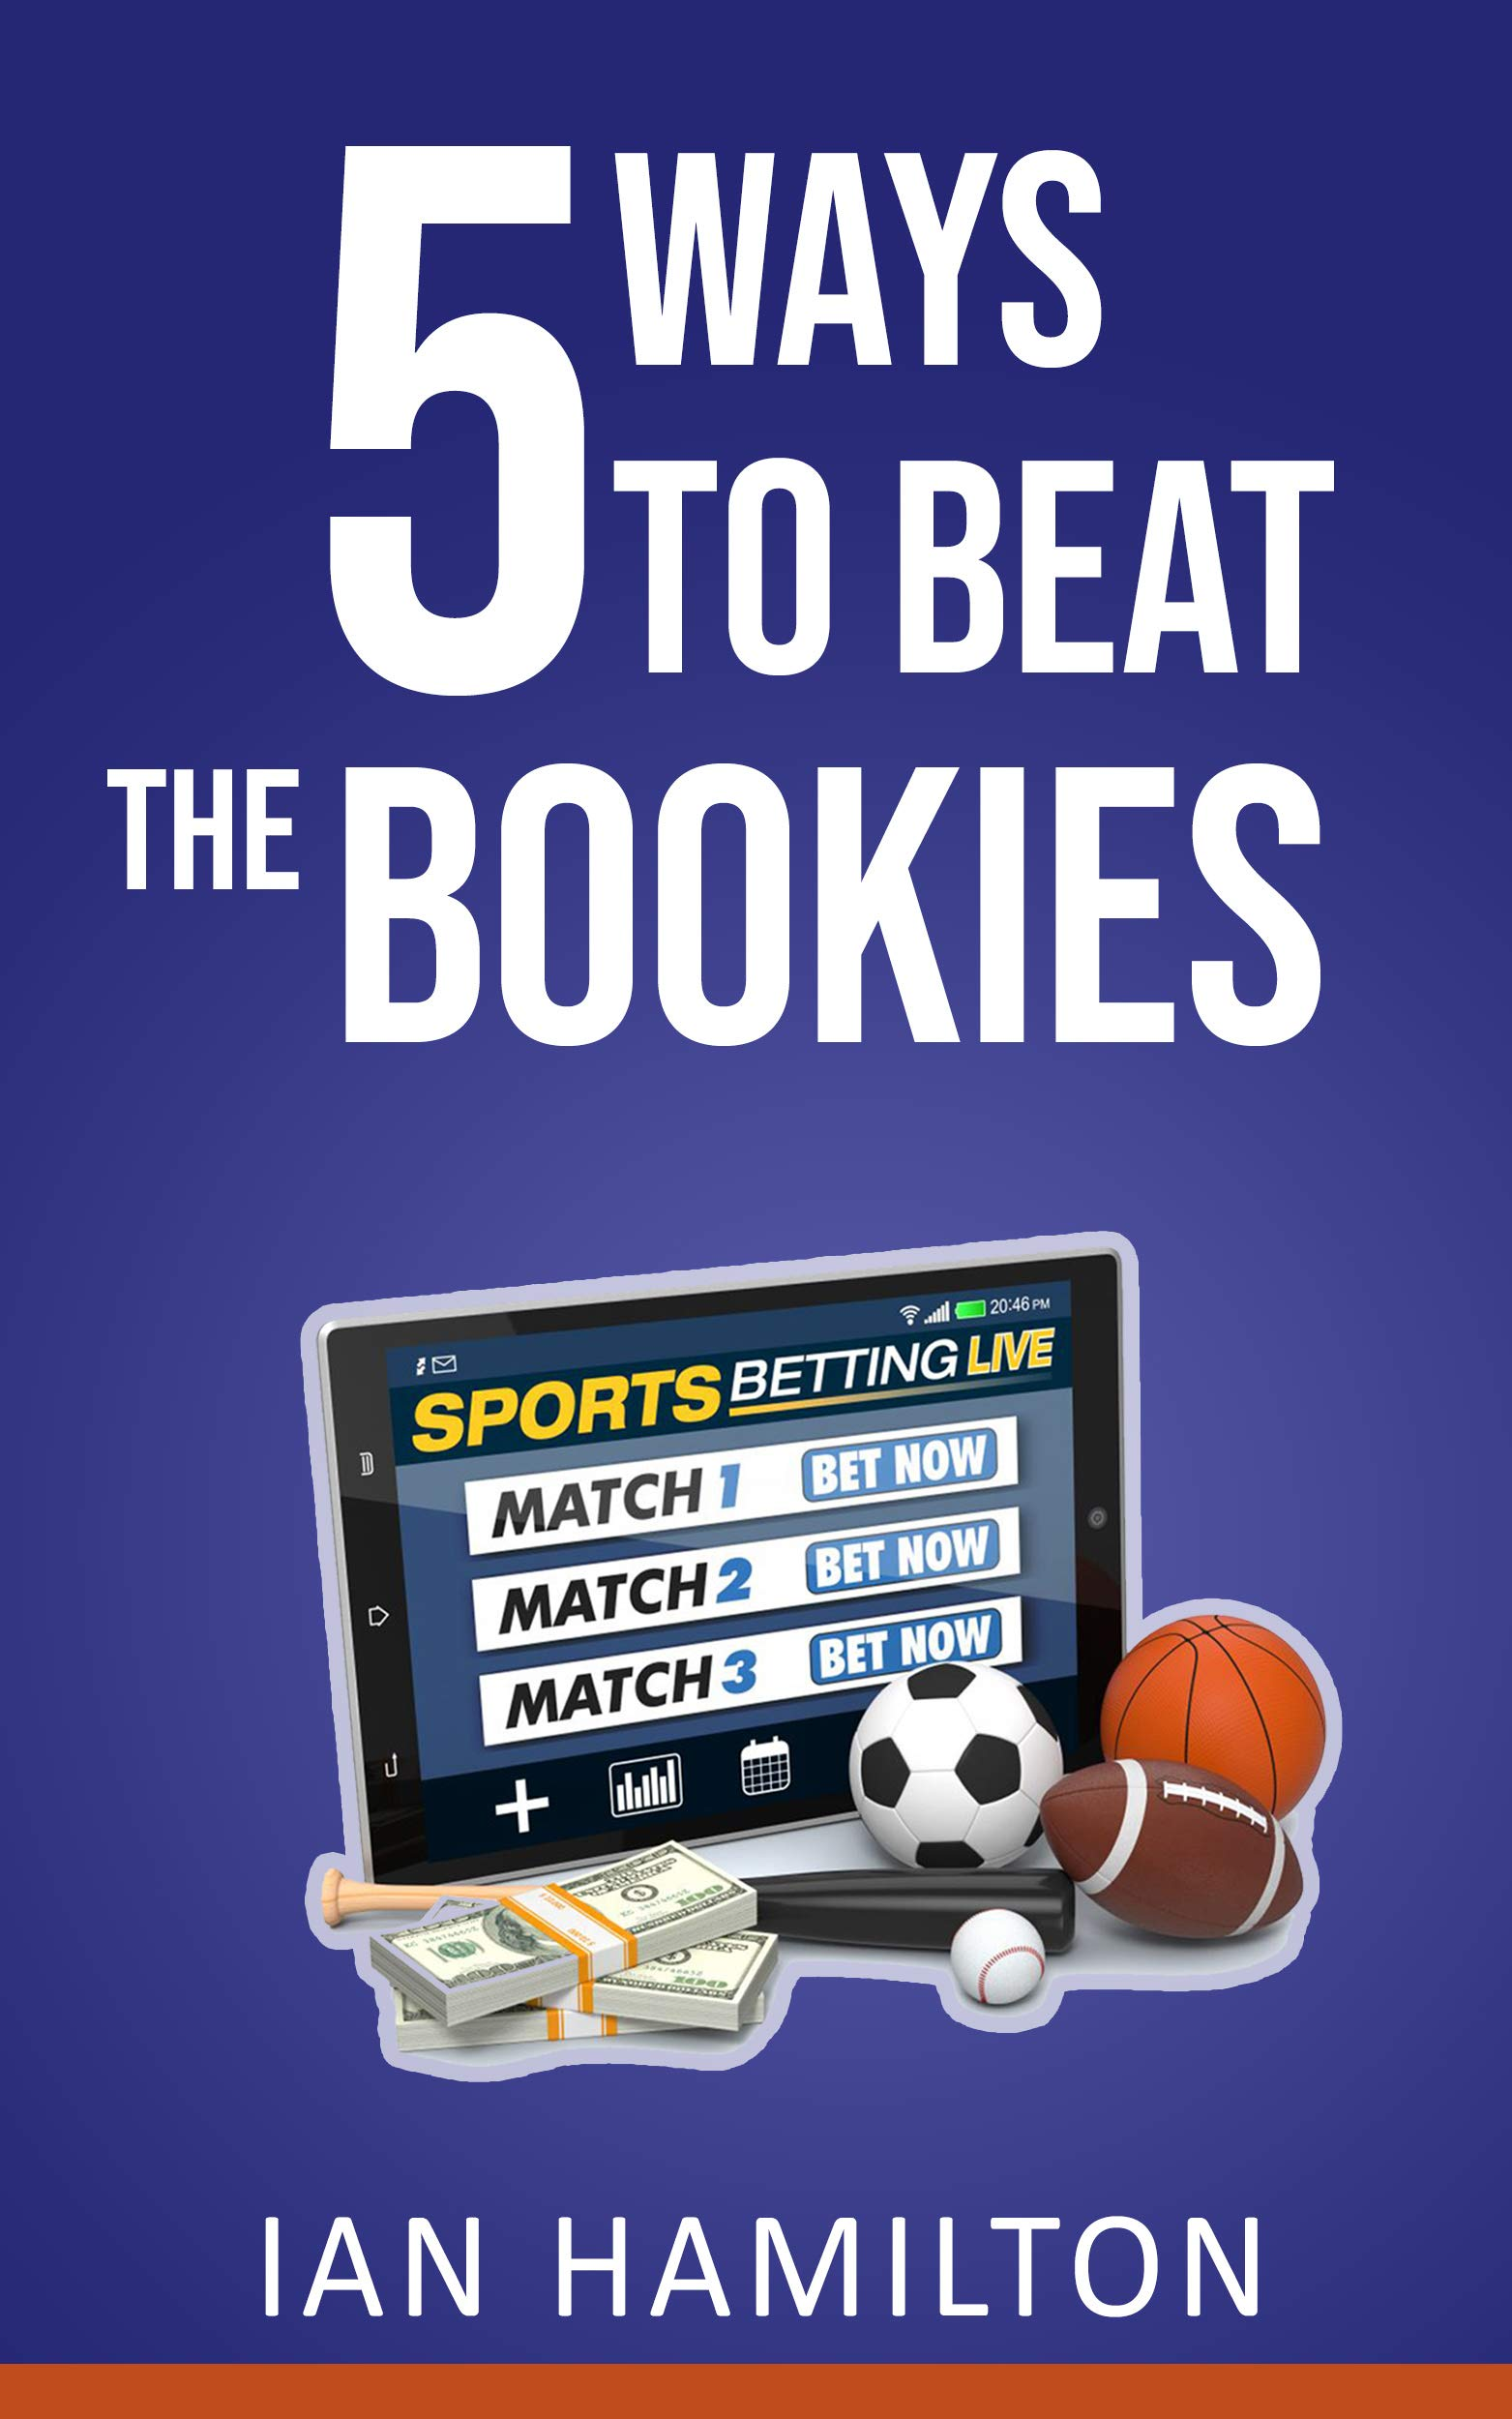 5 Ways To Beat The Bookies.: How To Make Money From Betting at Home